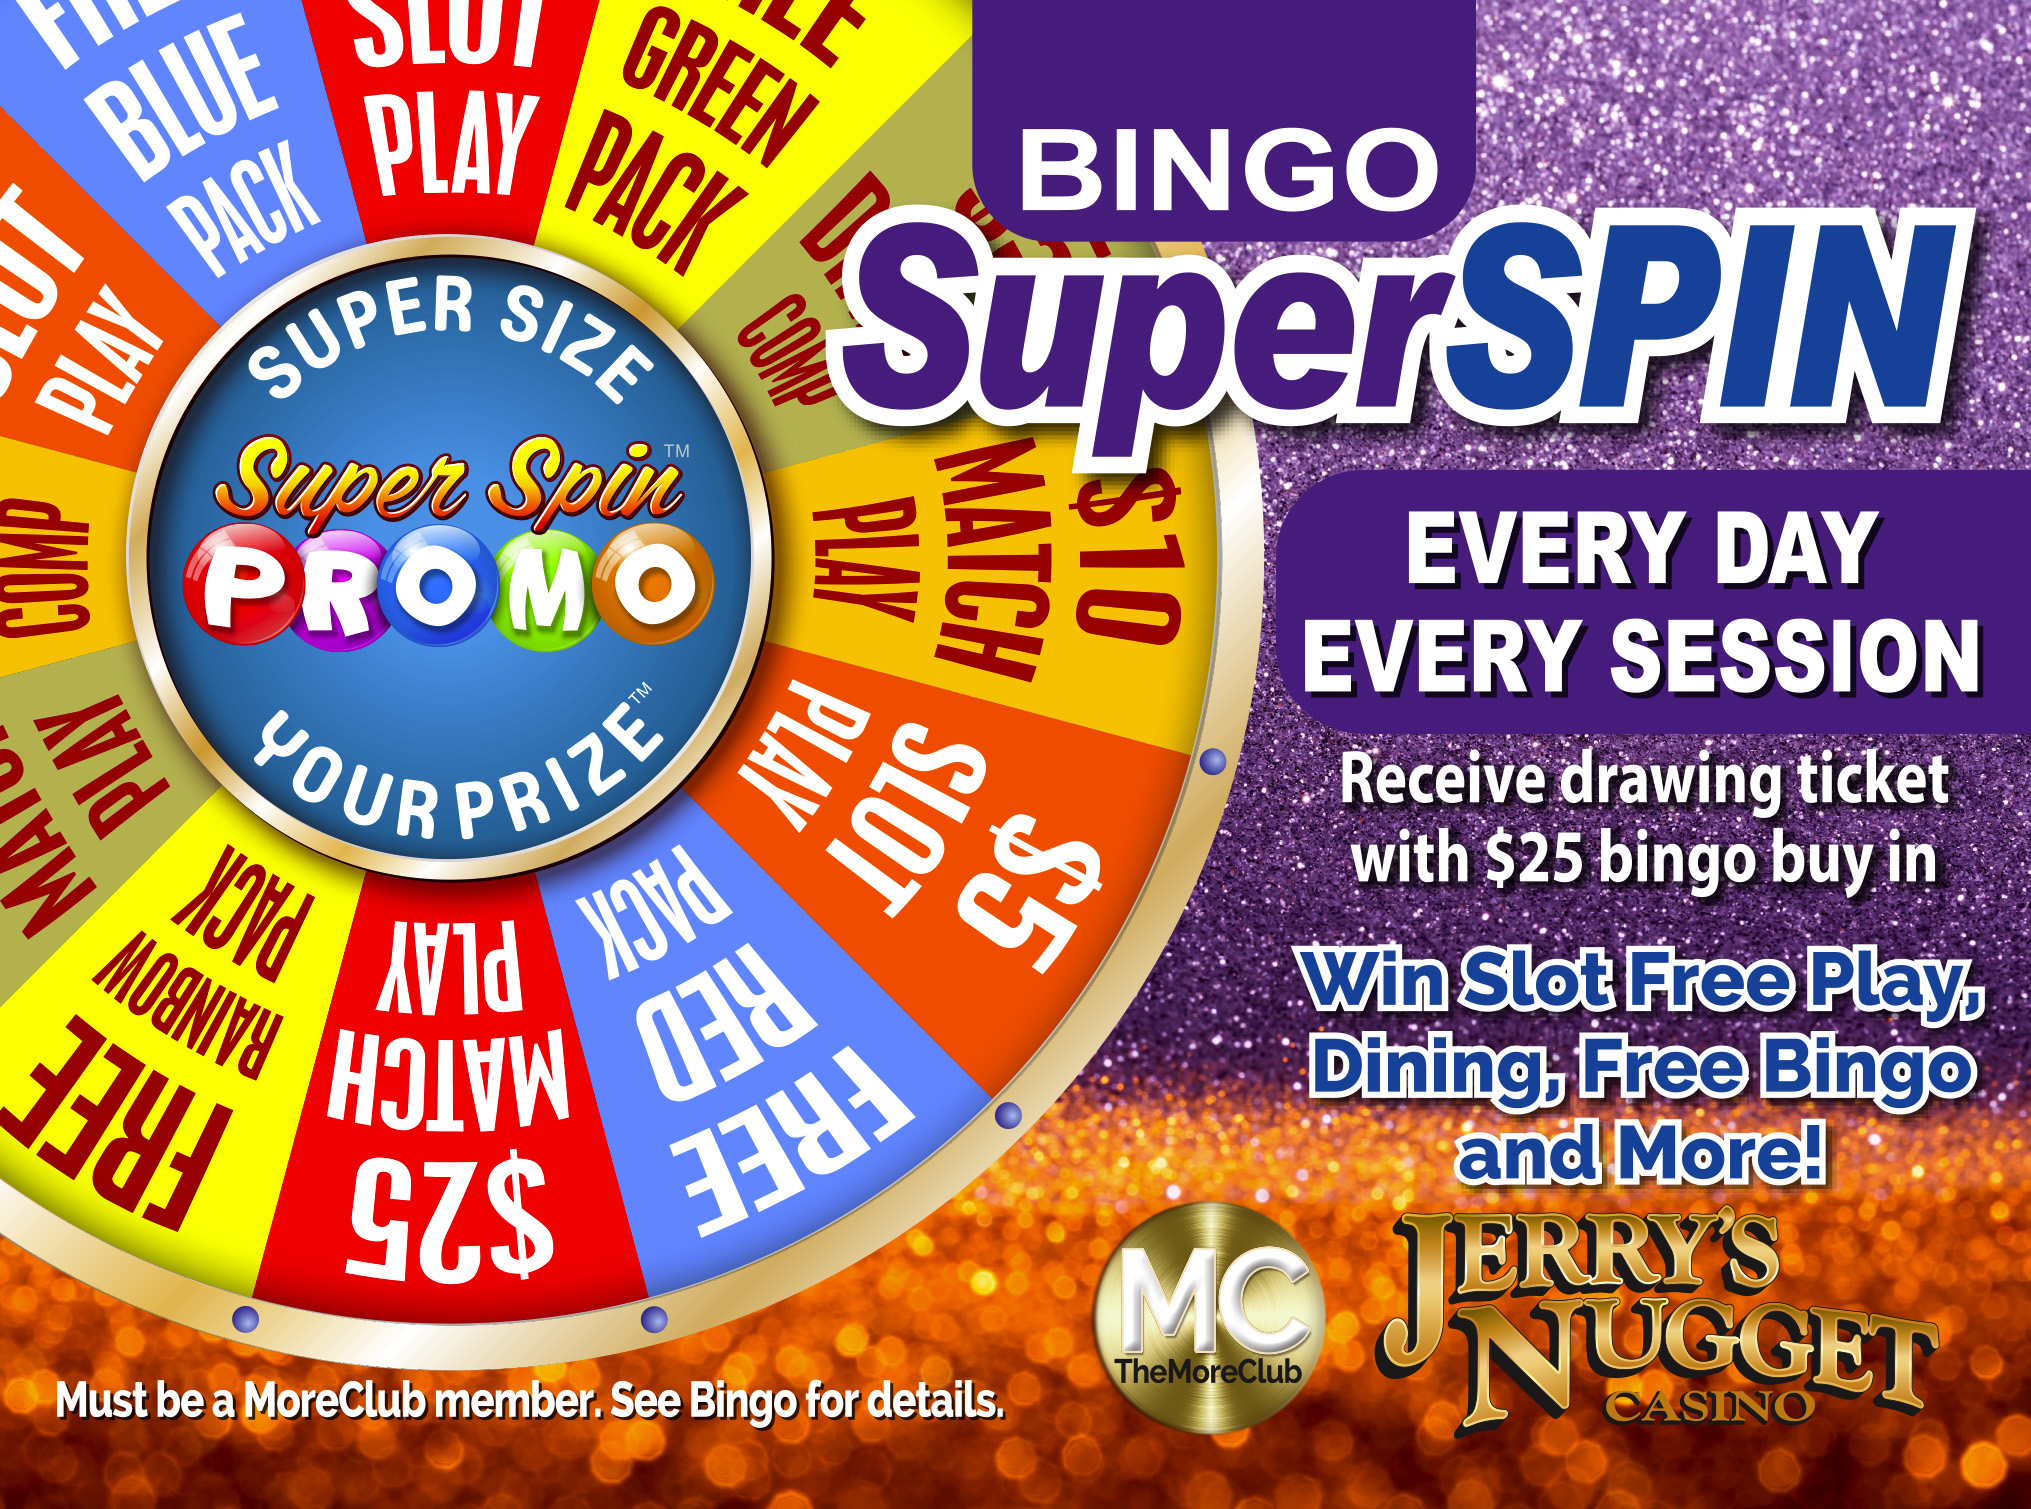 Bingo Super Spin Prize Giveaway